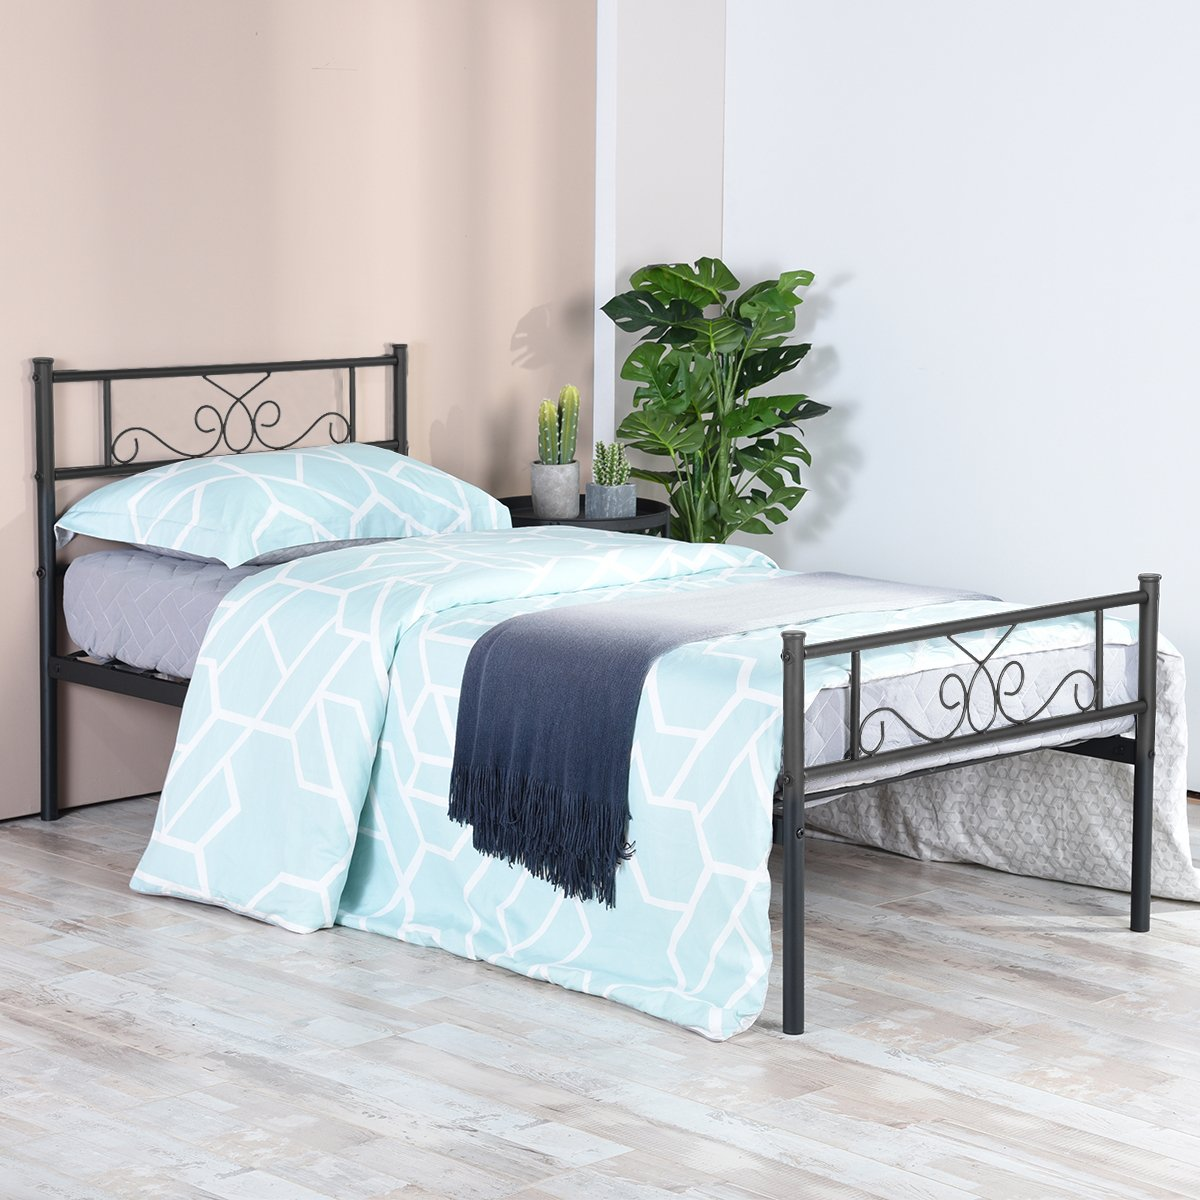 SimLife Twin Size Metal Bed Frame Headboard Footboard Mattress Foundation Platform Bed Kids Adults No Box Spring Support Needed Easy to Put Together Black